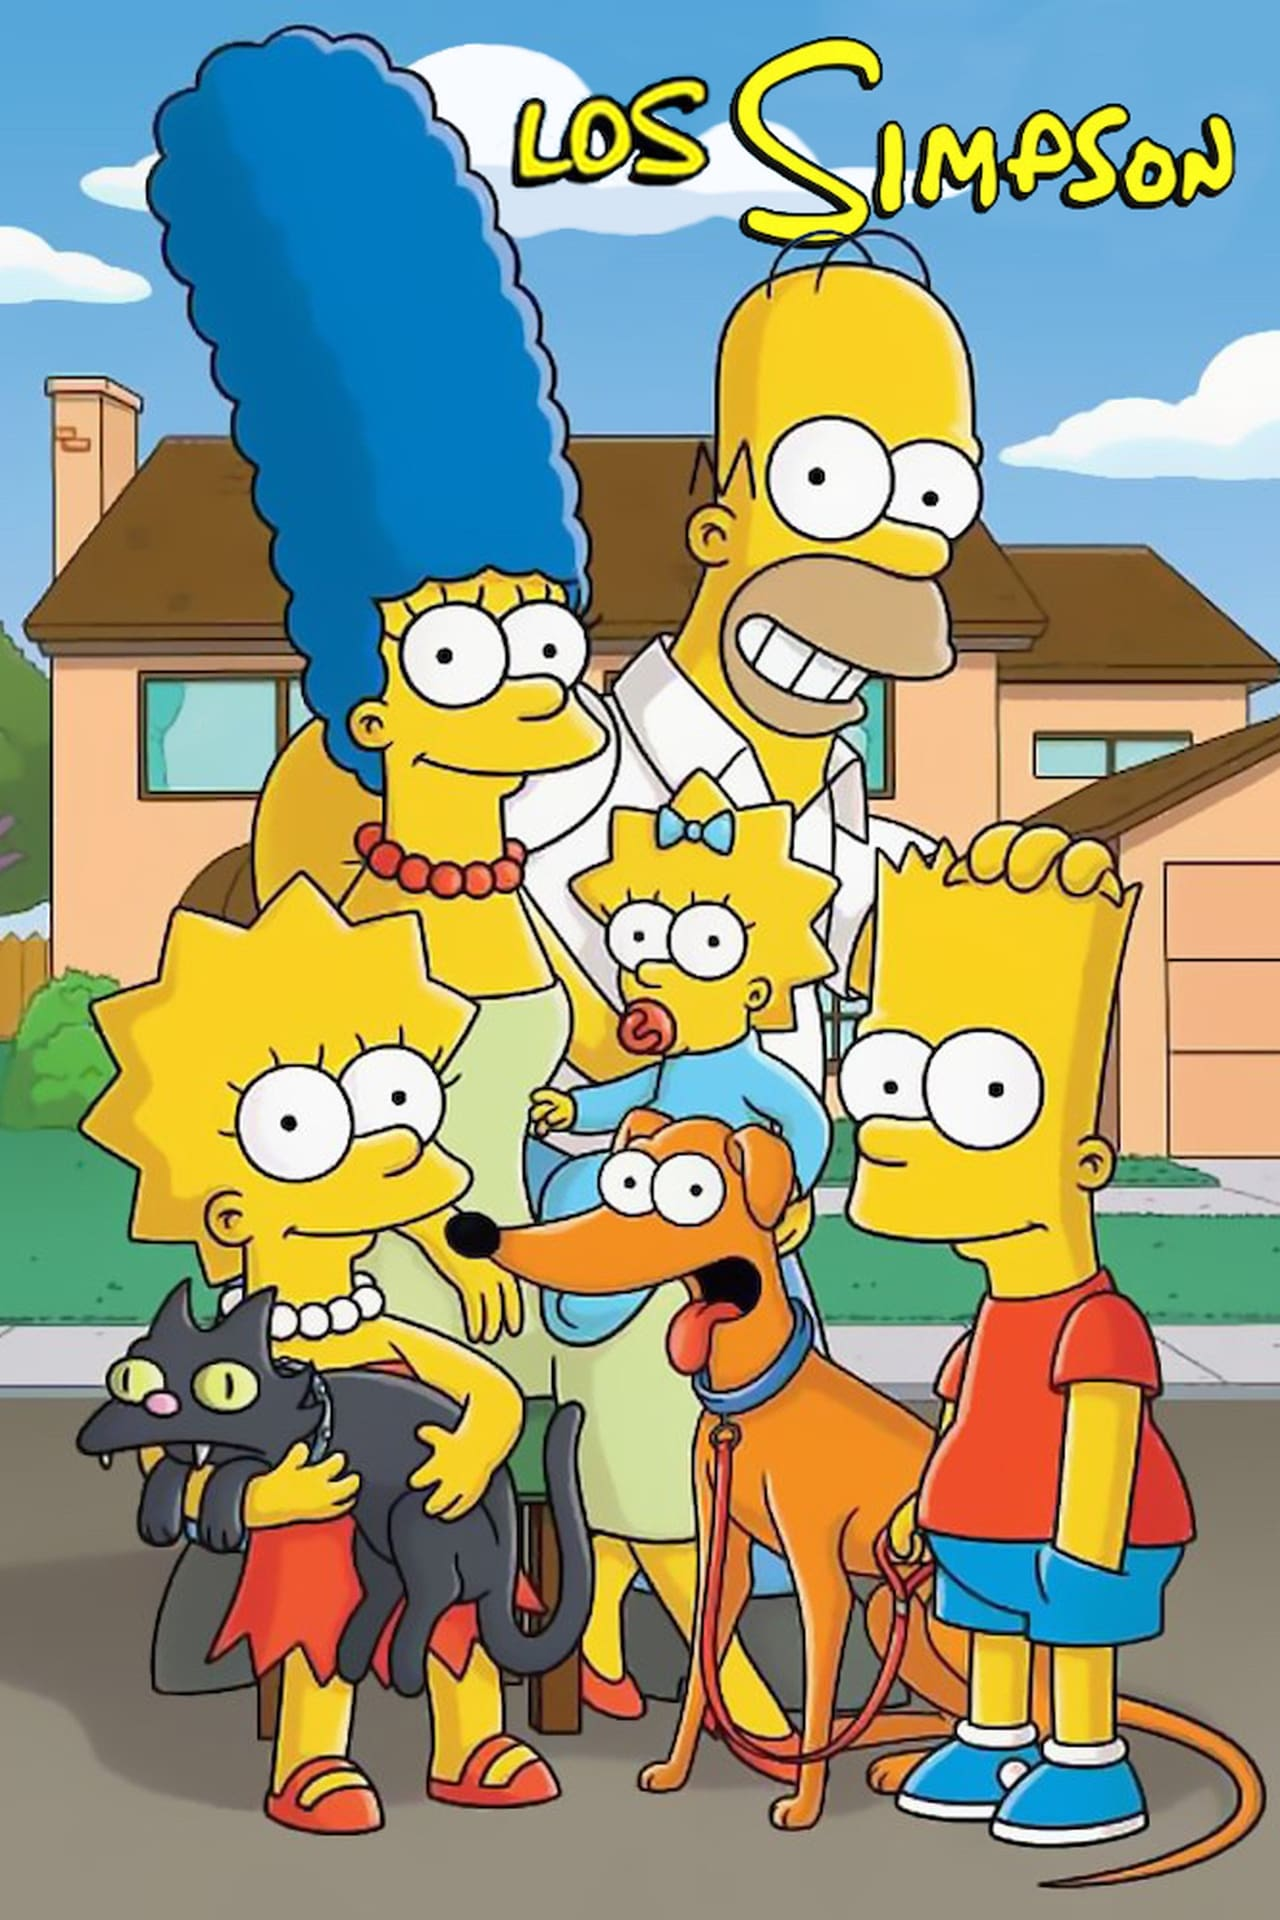 Los Simpson - Season 31 Episode 8 : Episodio 8